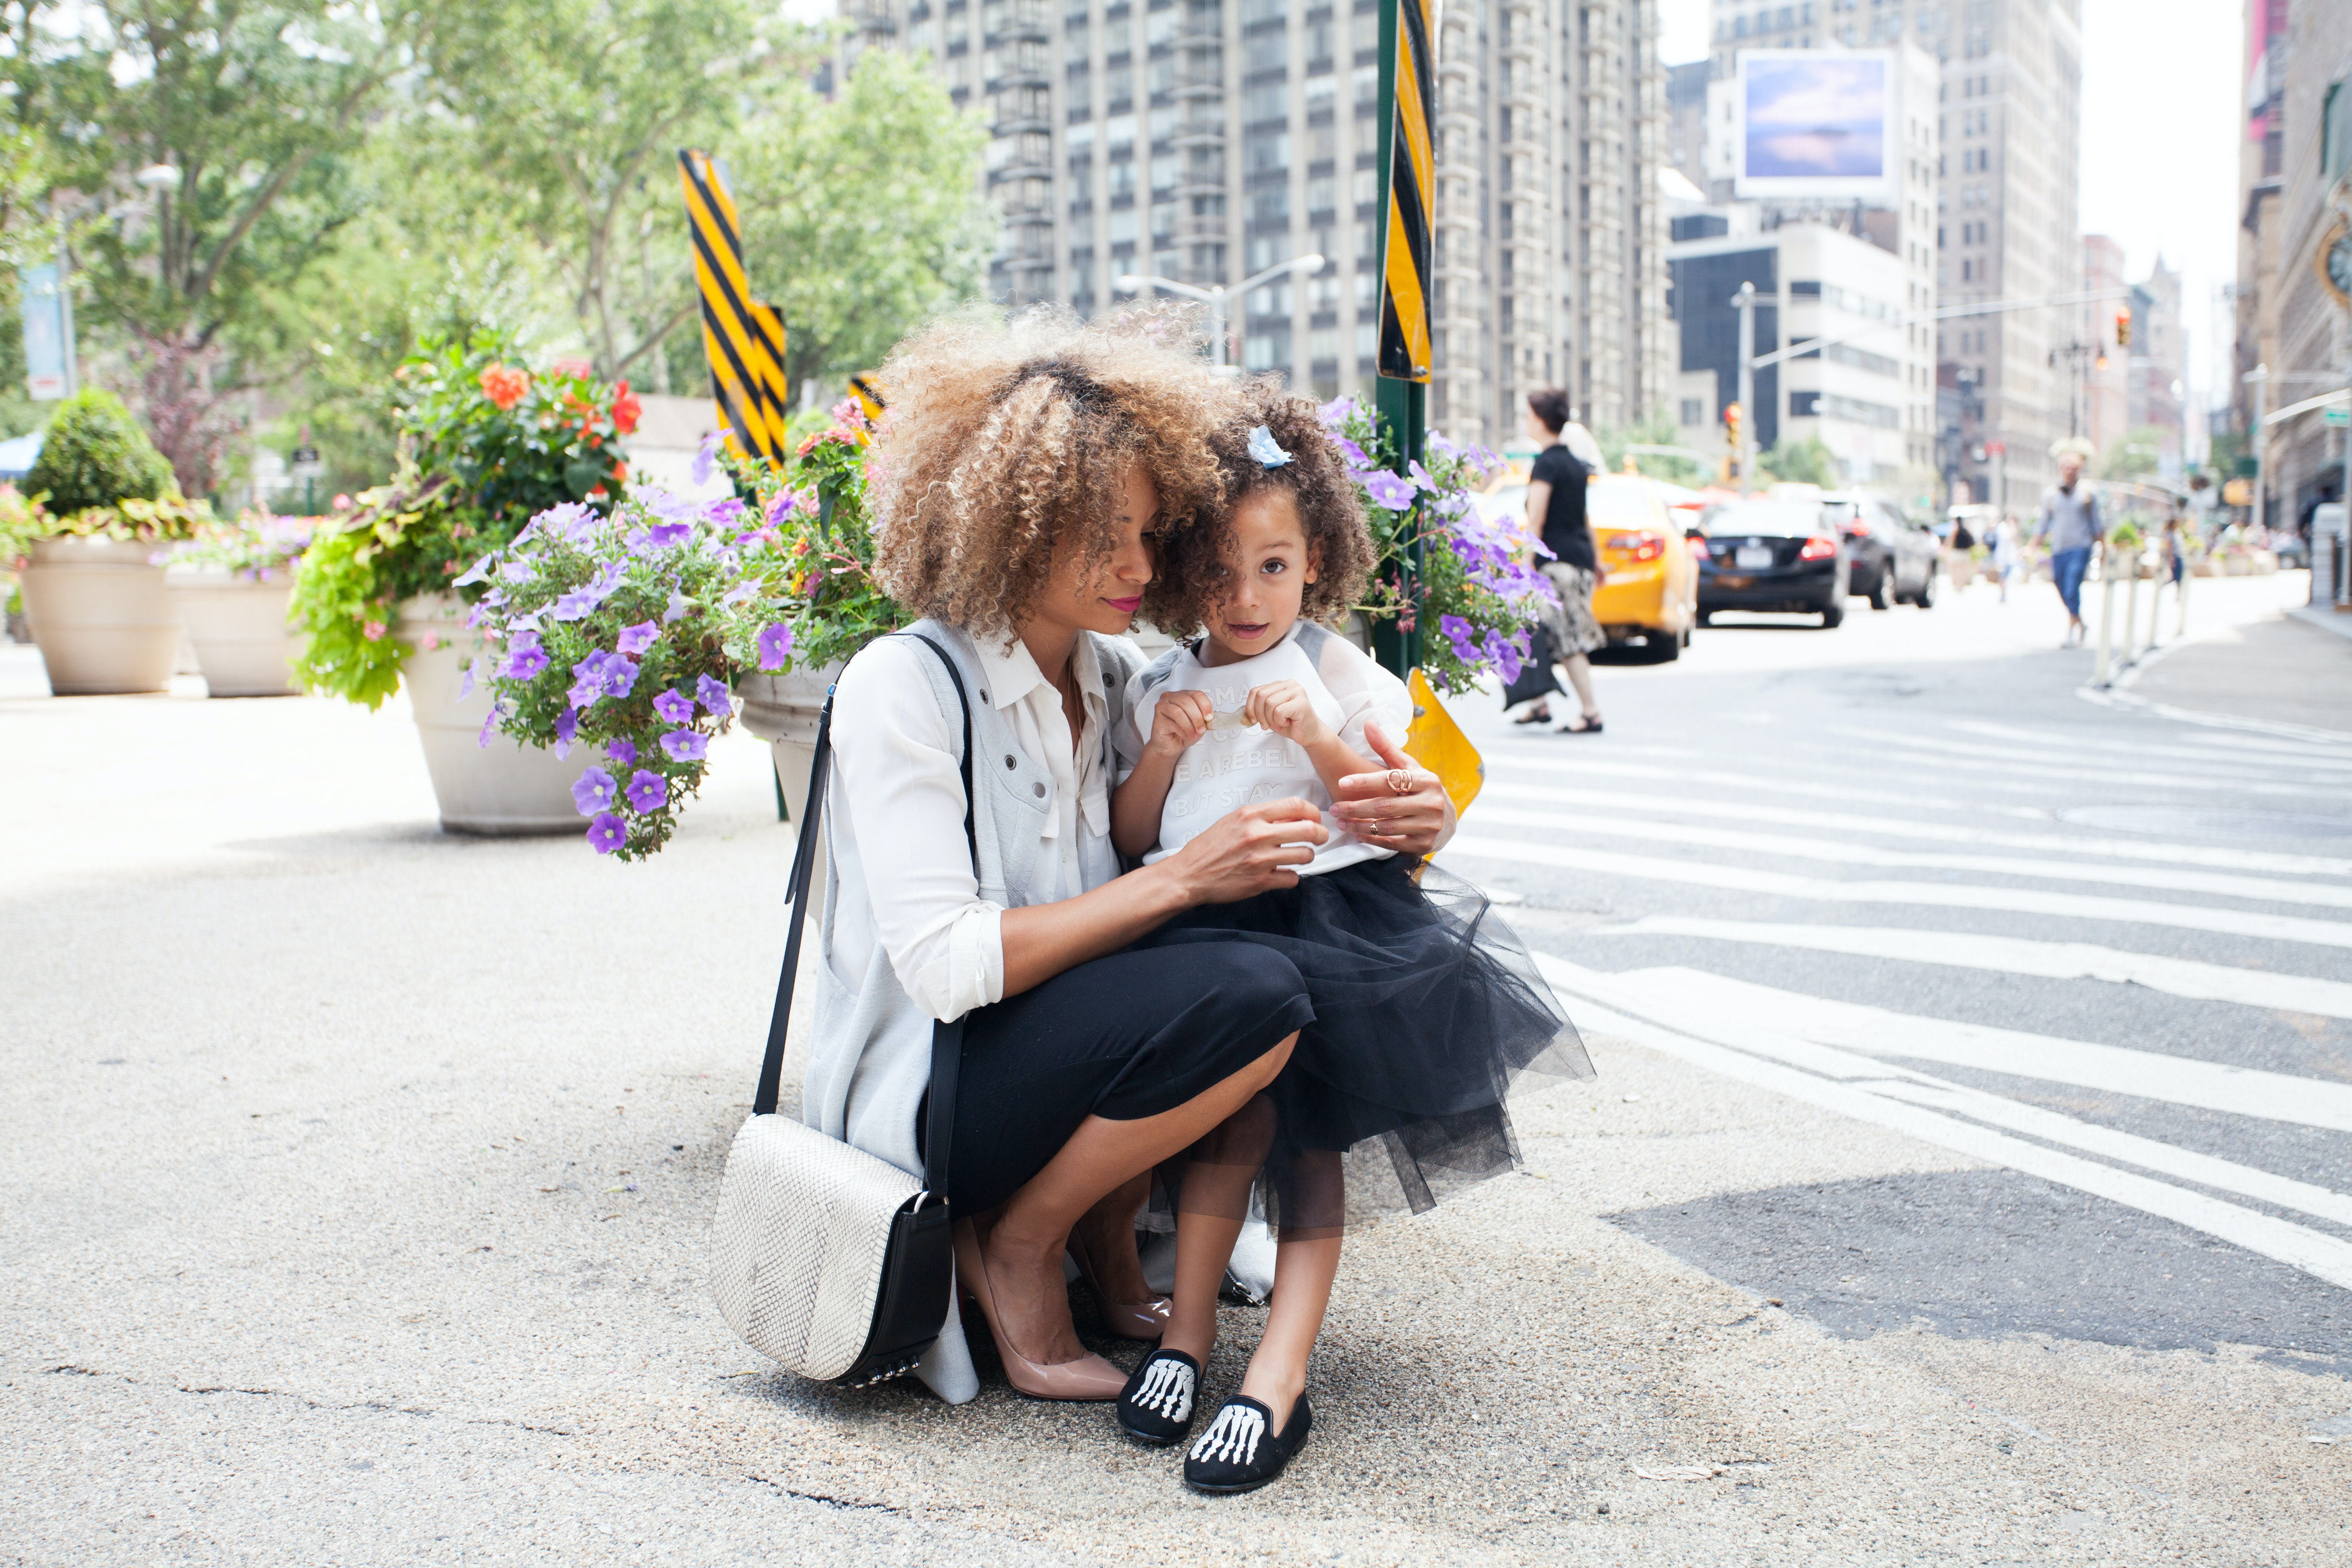 Working Black mom kneeling with daughter on city street